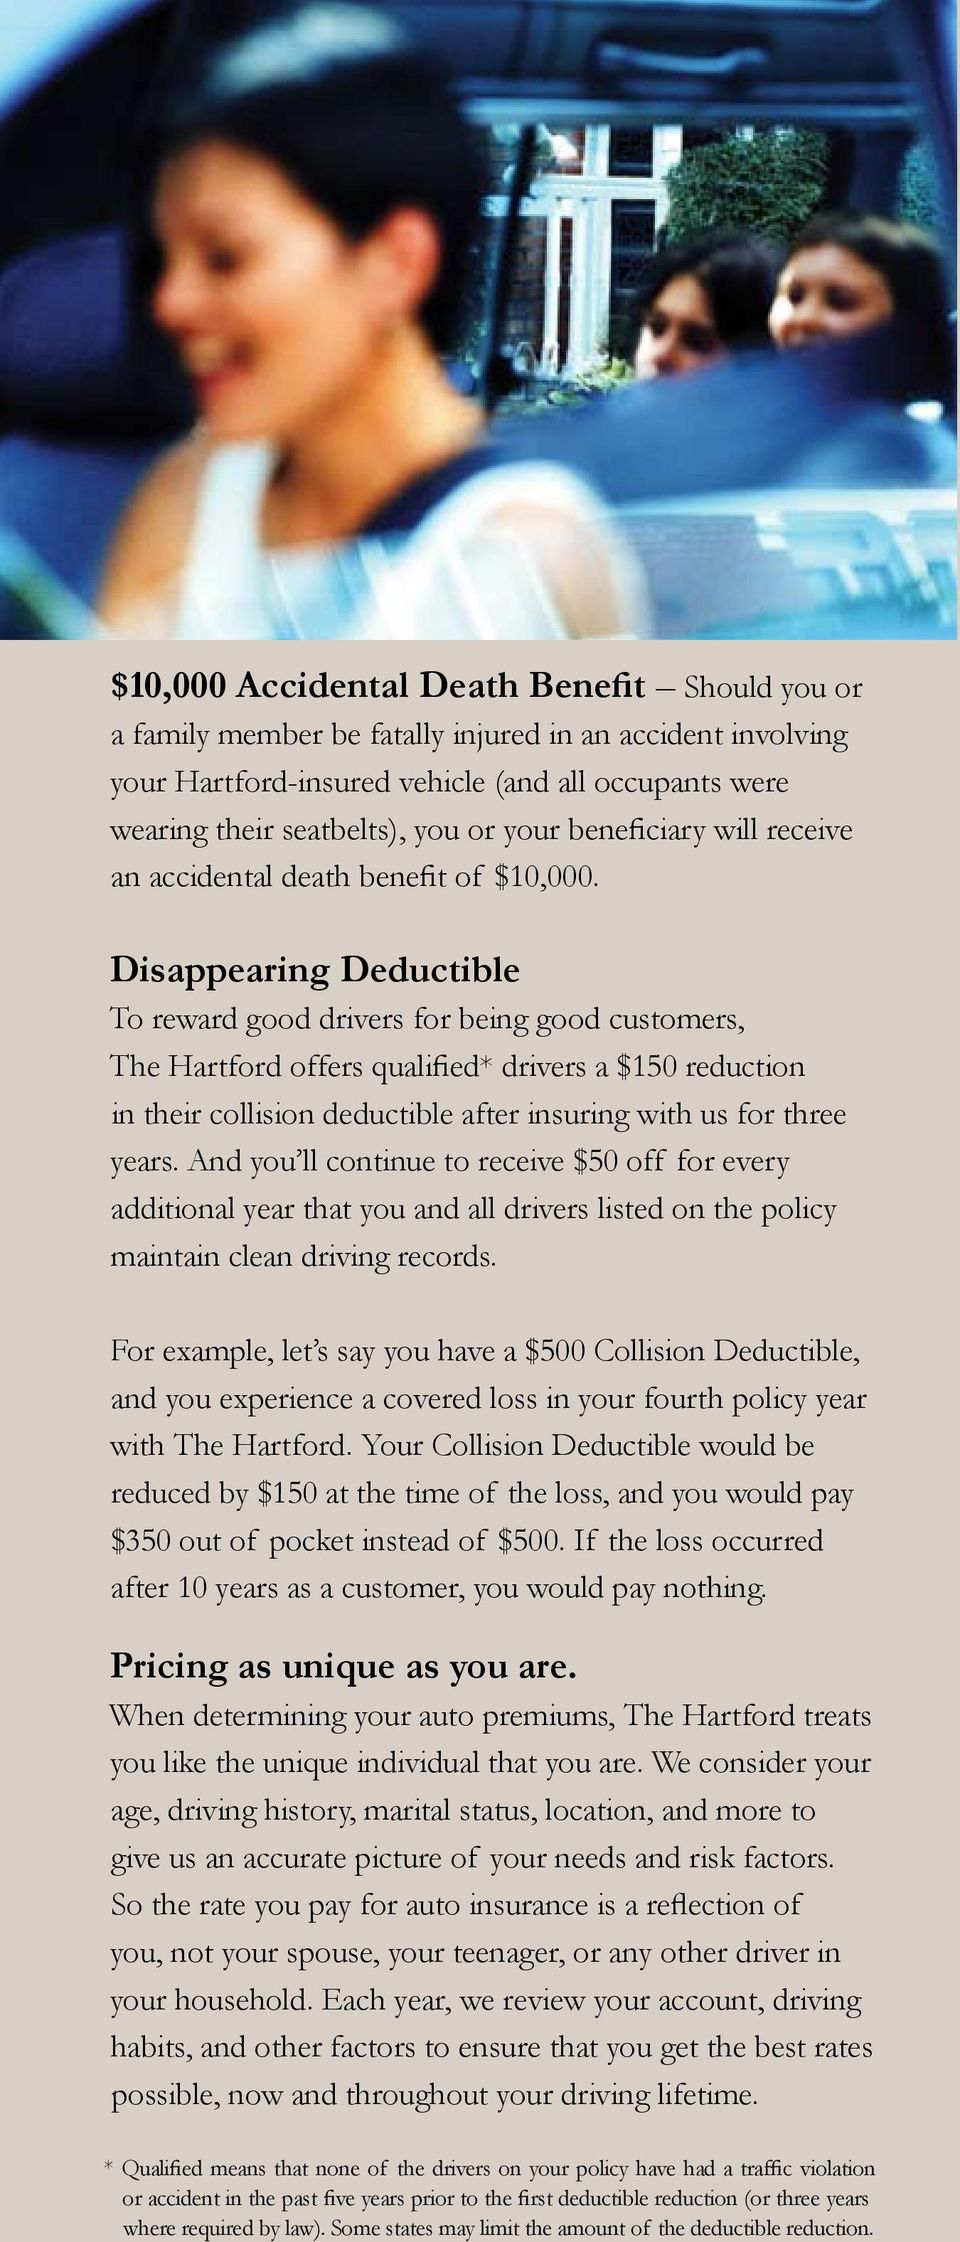 Disappearing Deductible To reward good drivers for being good customers, The Hartford offers qualified* drivers a $150 reduction in their collision deductible after insuring with us for three years.